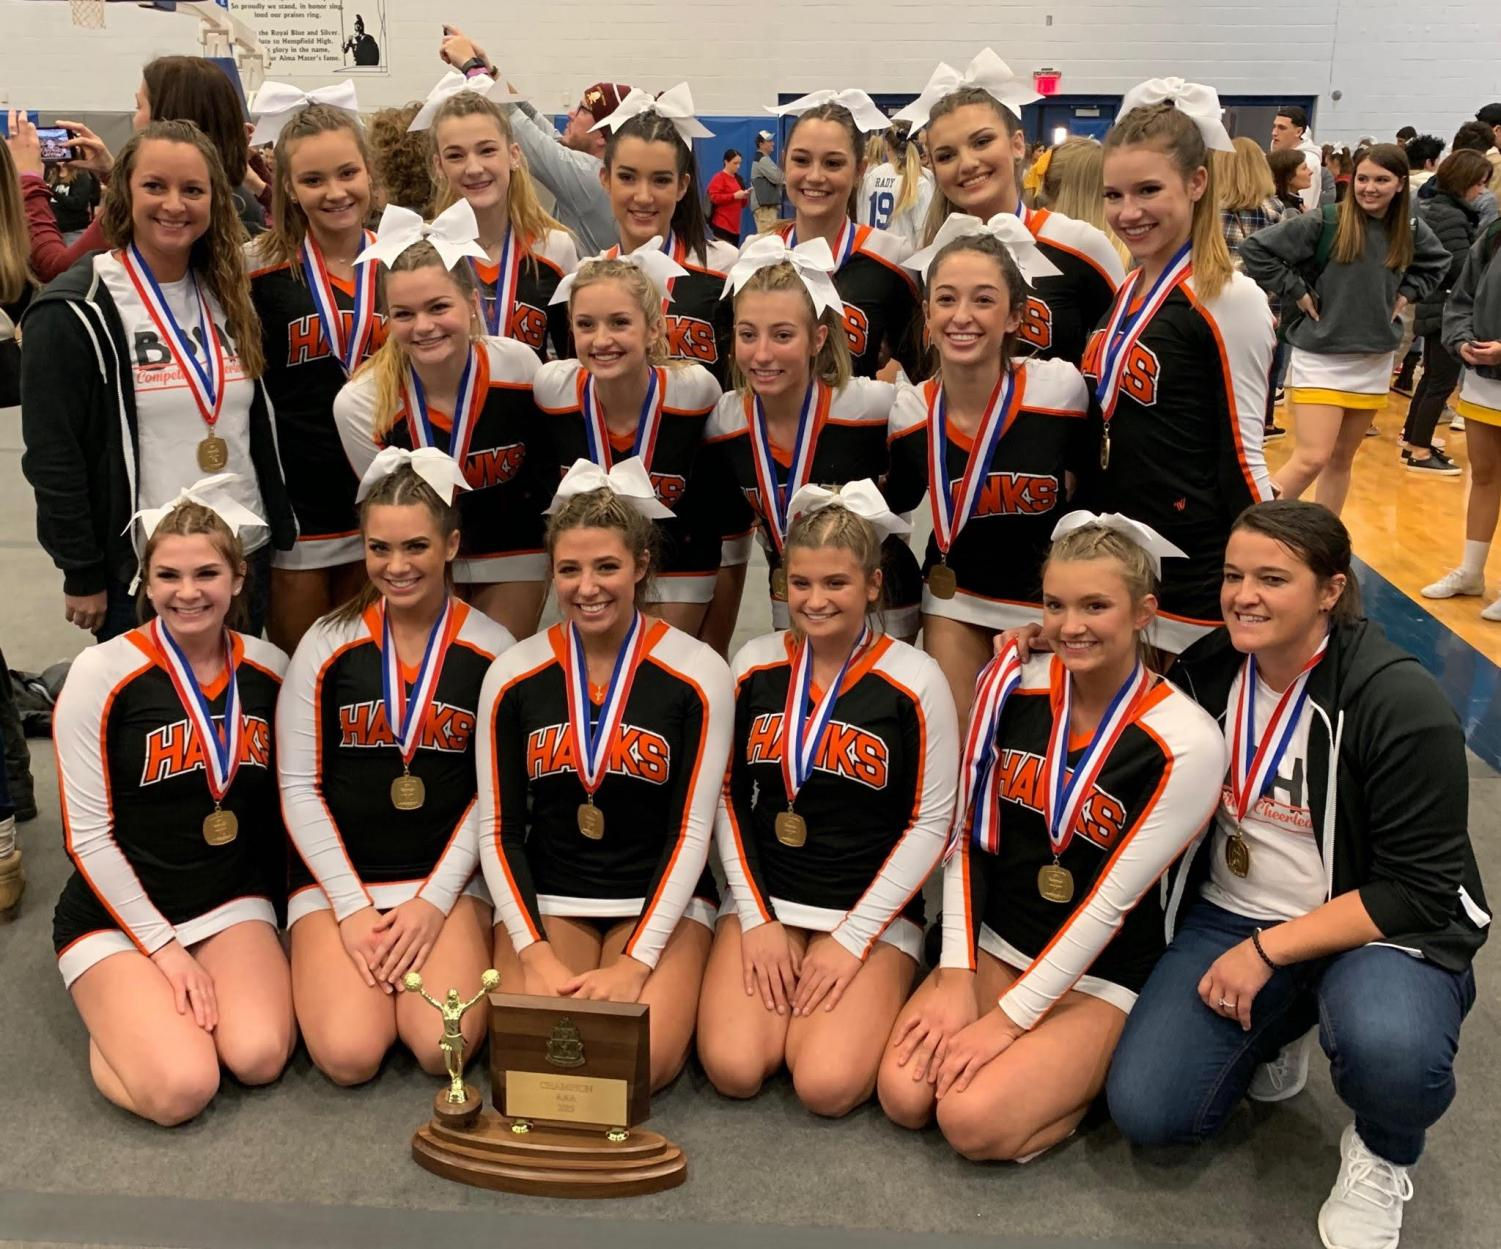 The Bethel Park competitive cheer squad brings home their second WPIAL title in the past two years.